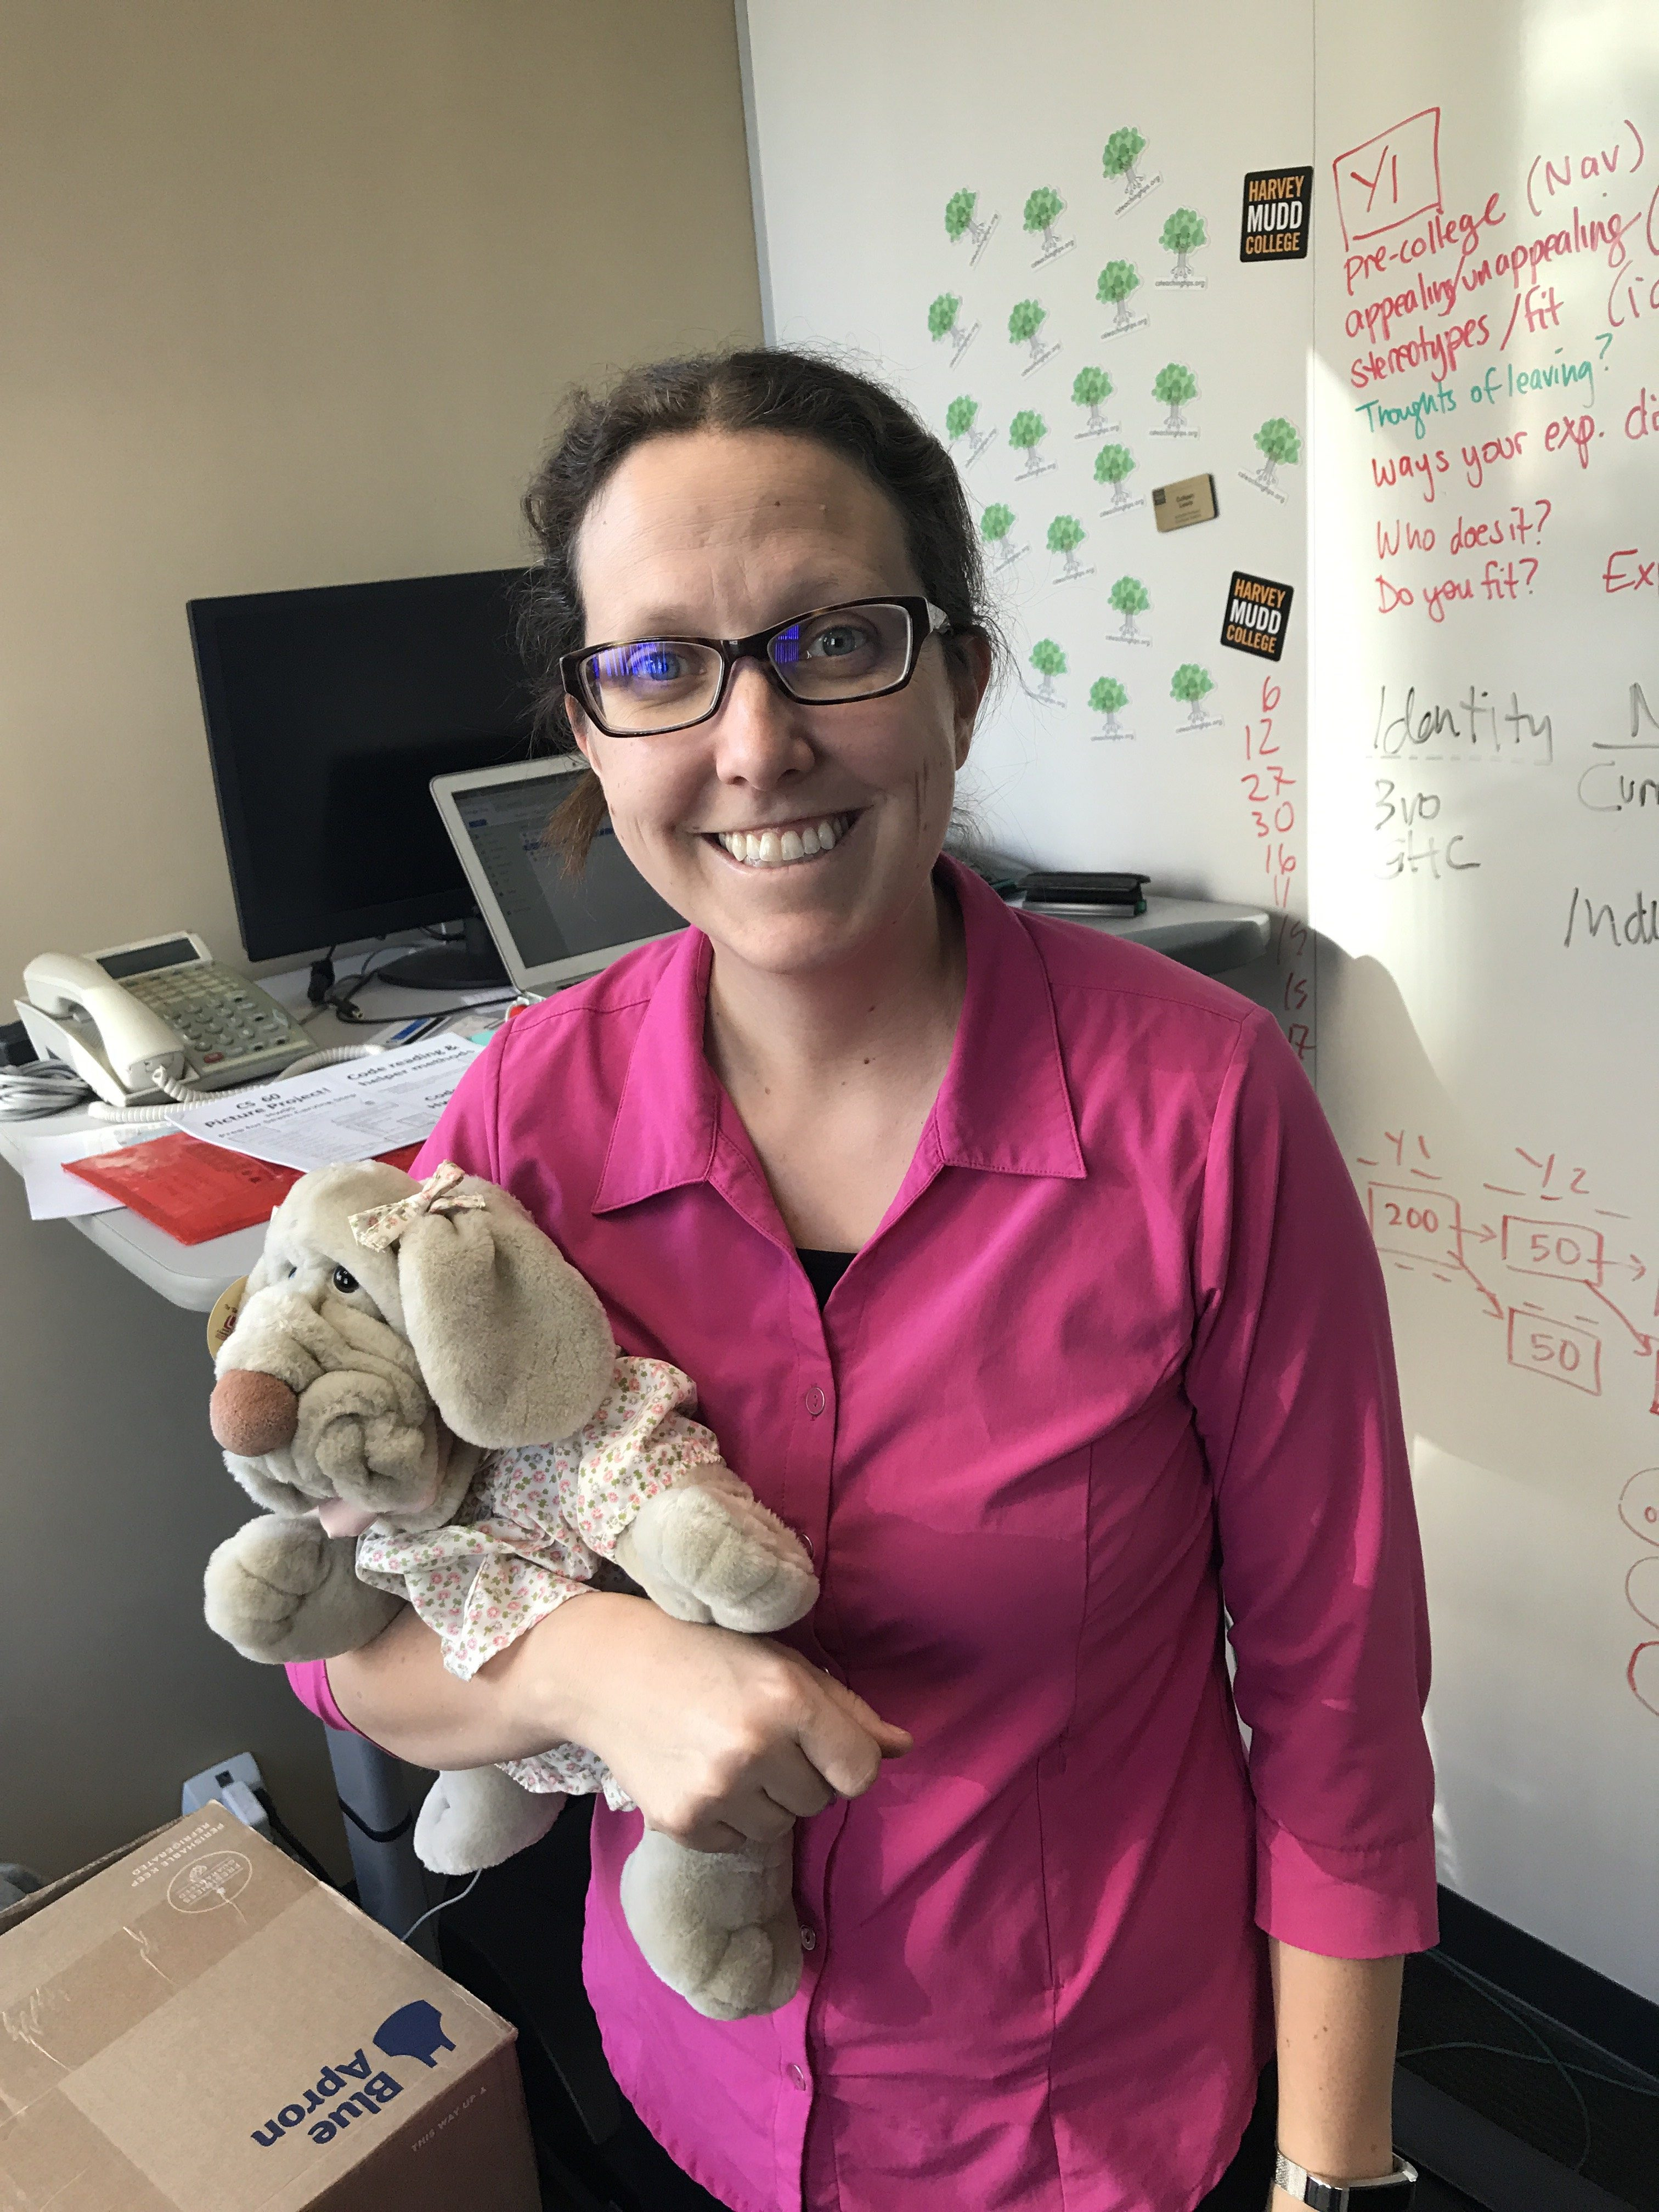 Professor Colleen Lewis holding a stuffed dog in her office